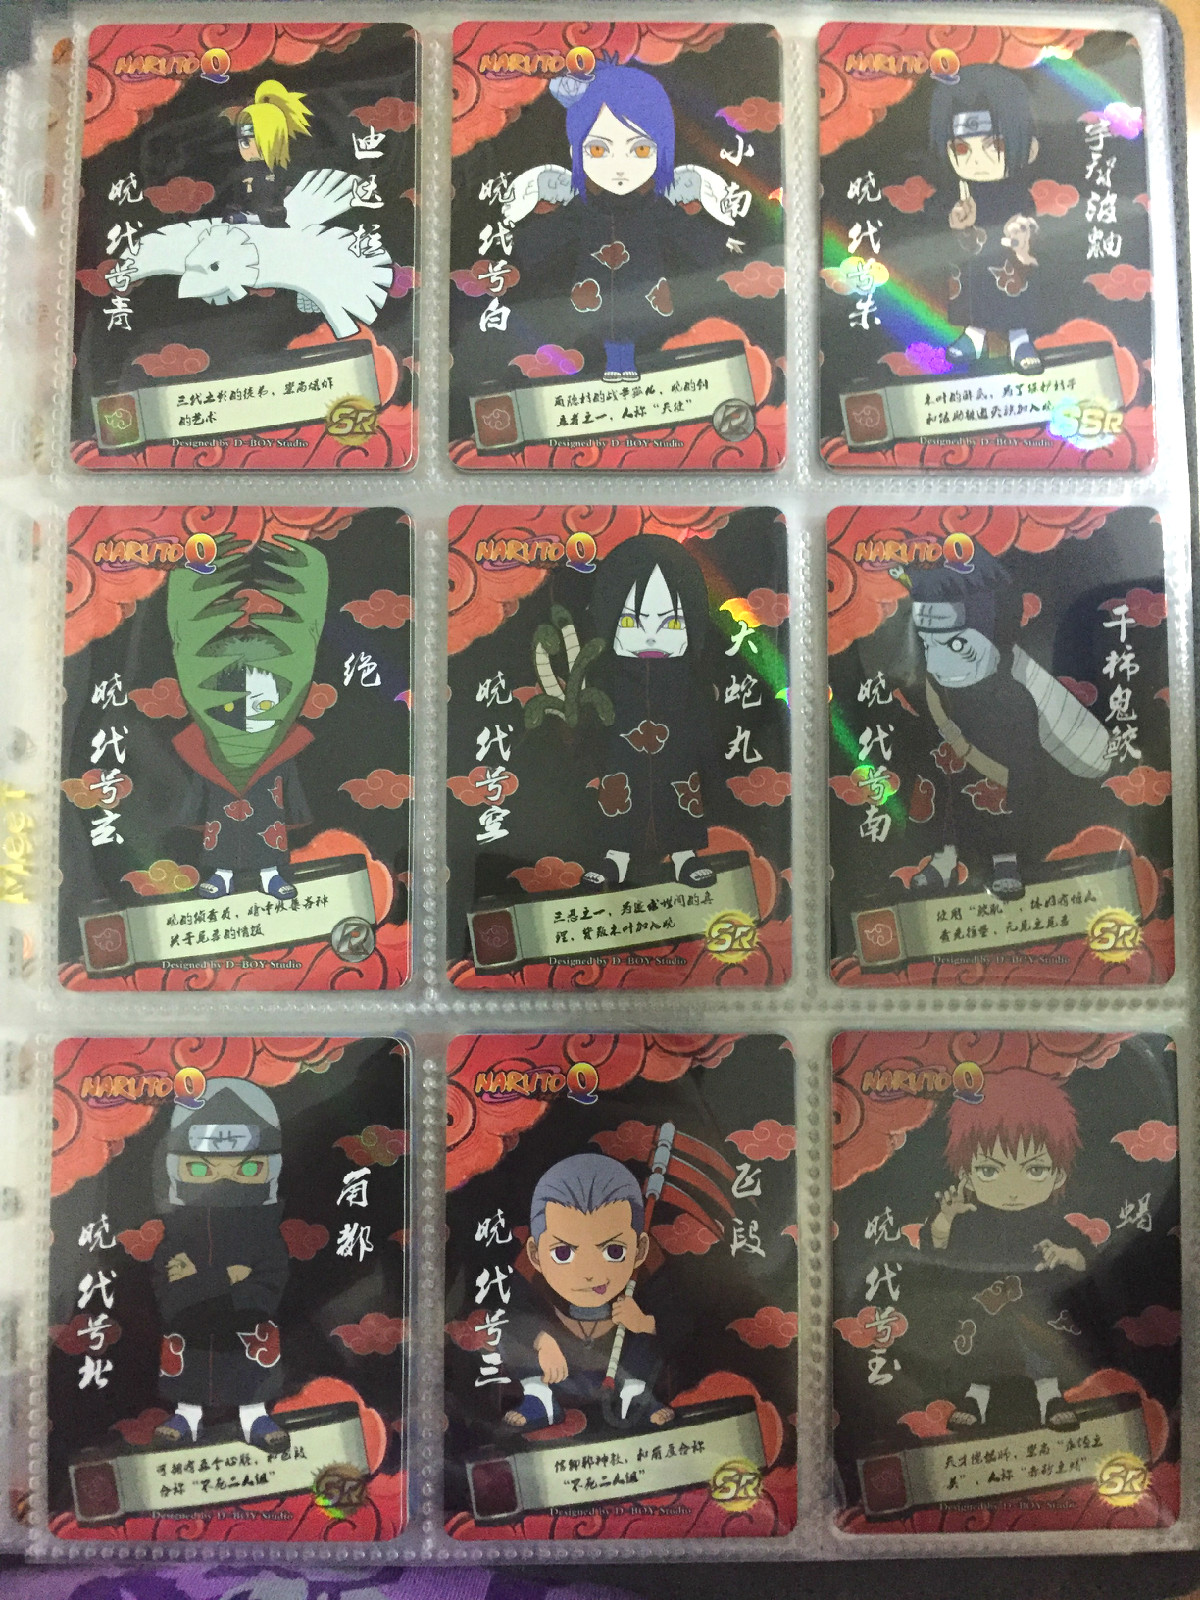 126pcs/set NARUTO Toys Hobbies Hobby Collectibles Game Collection Anime Cards